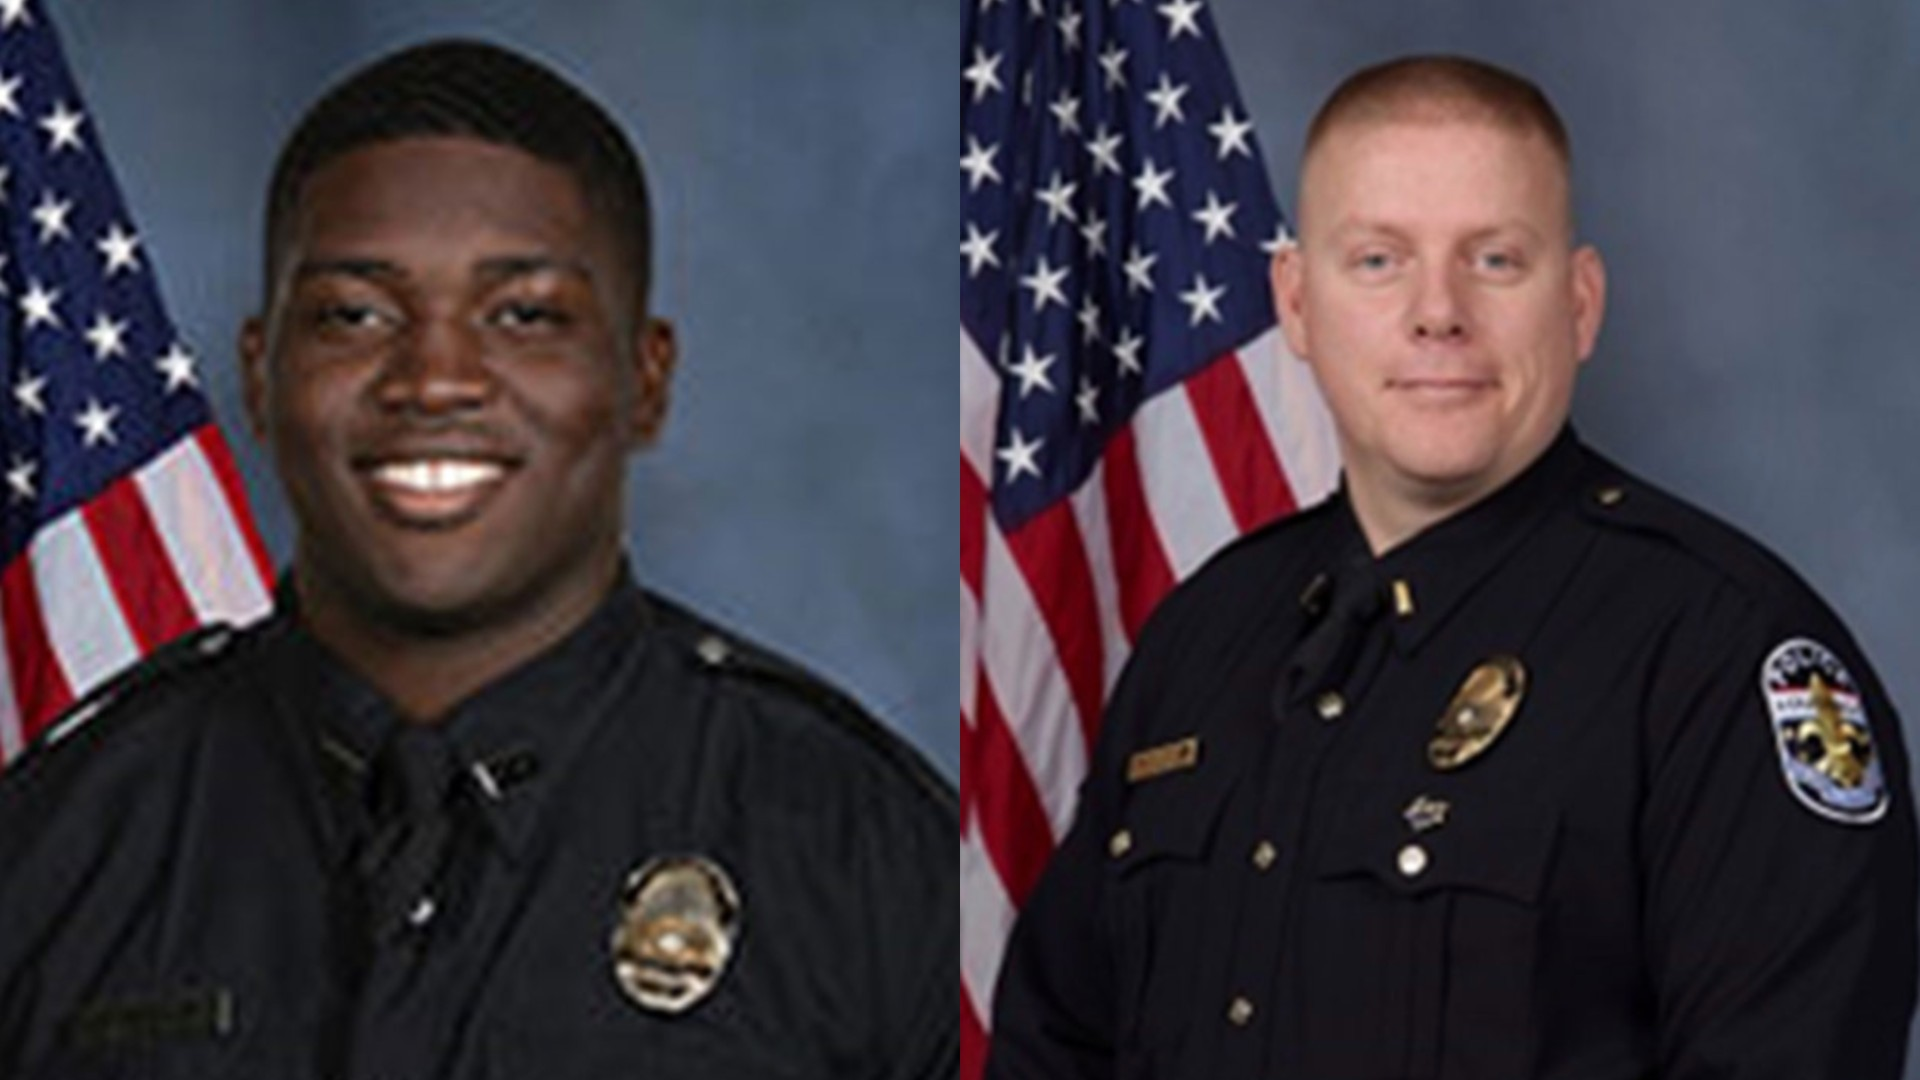 Officer Robinson Desroches, left, and Major Aubrey Gregory, right, are seen in photos released by the Louisville Metro Police Department.